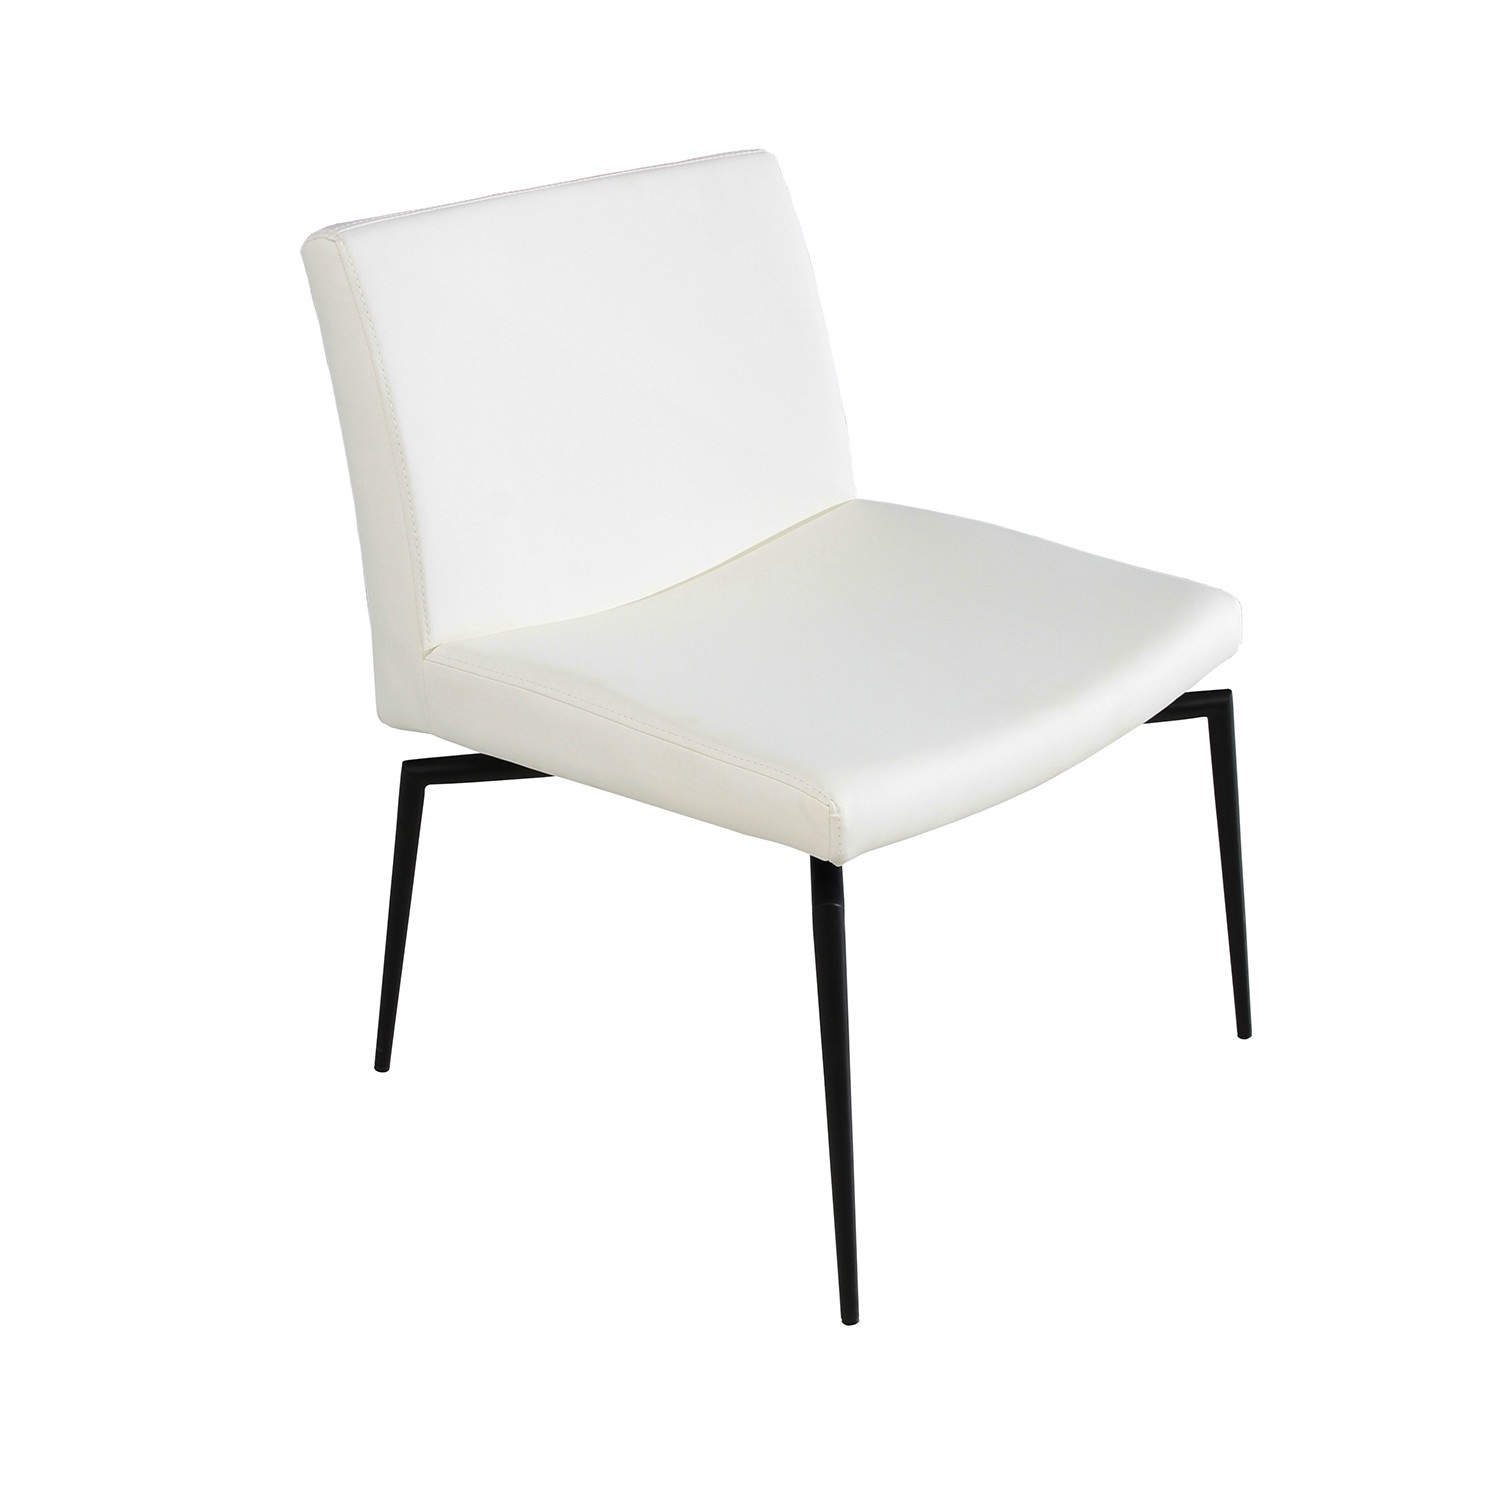 chair cba steel retro metal chairs lenox accent white casabianca touch of modern